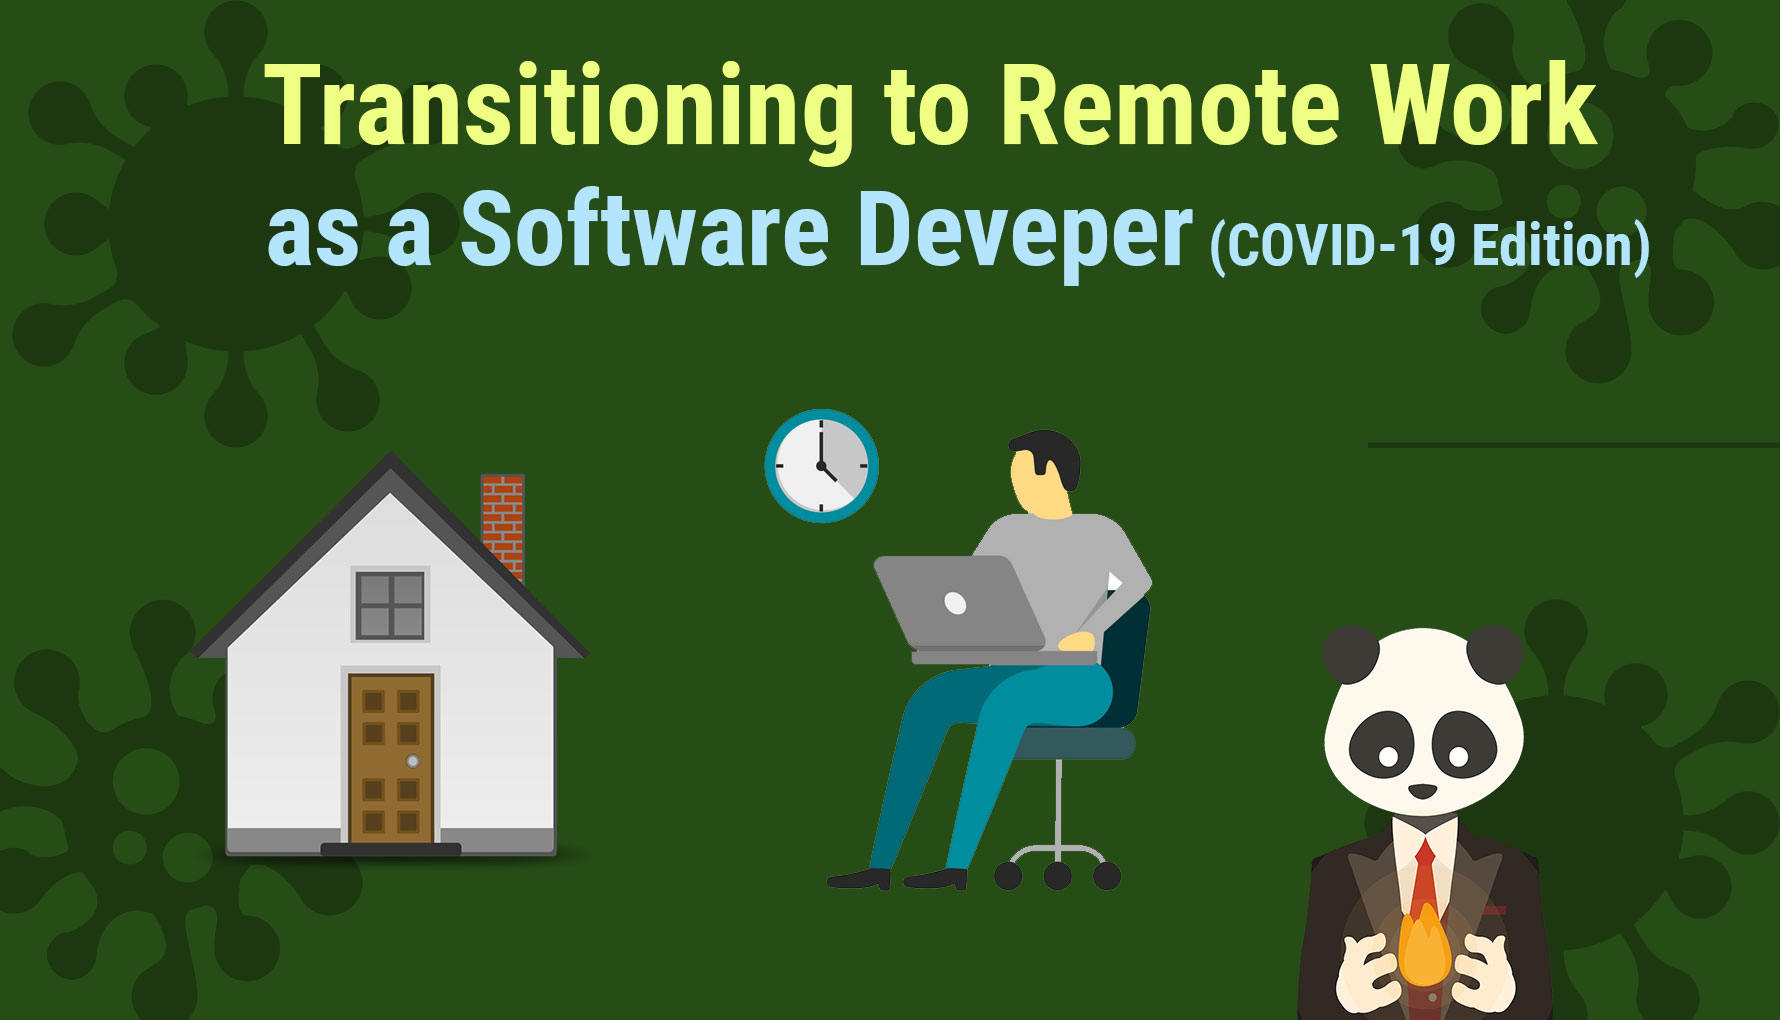 Transitioning to Remote Work as a Software Developer (COVID-19 Edition)